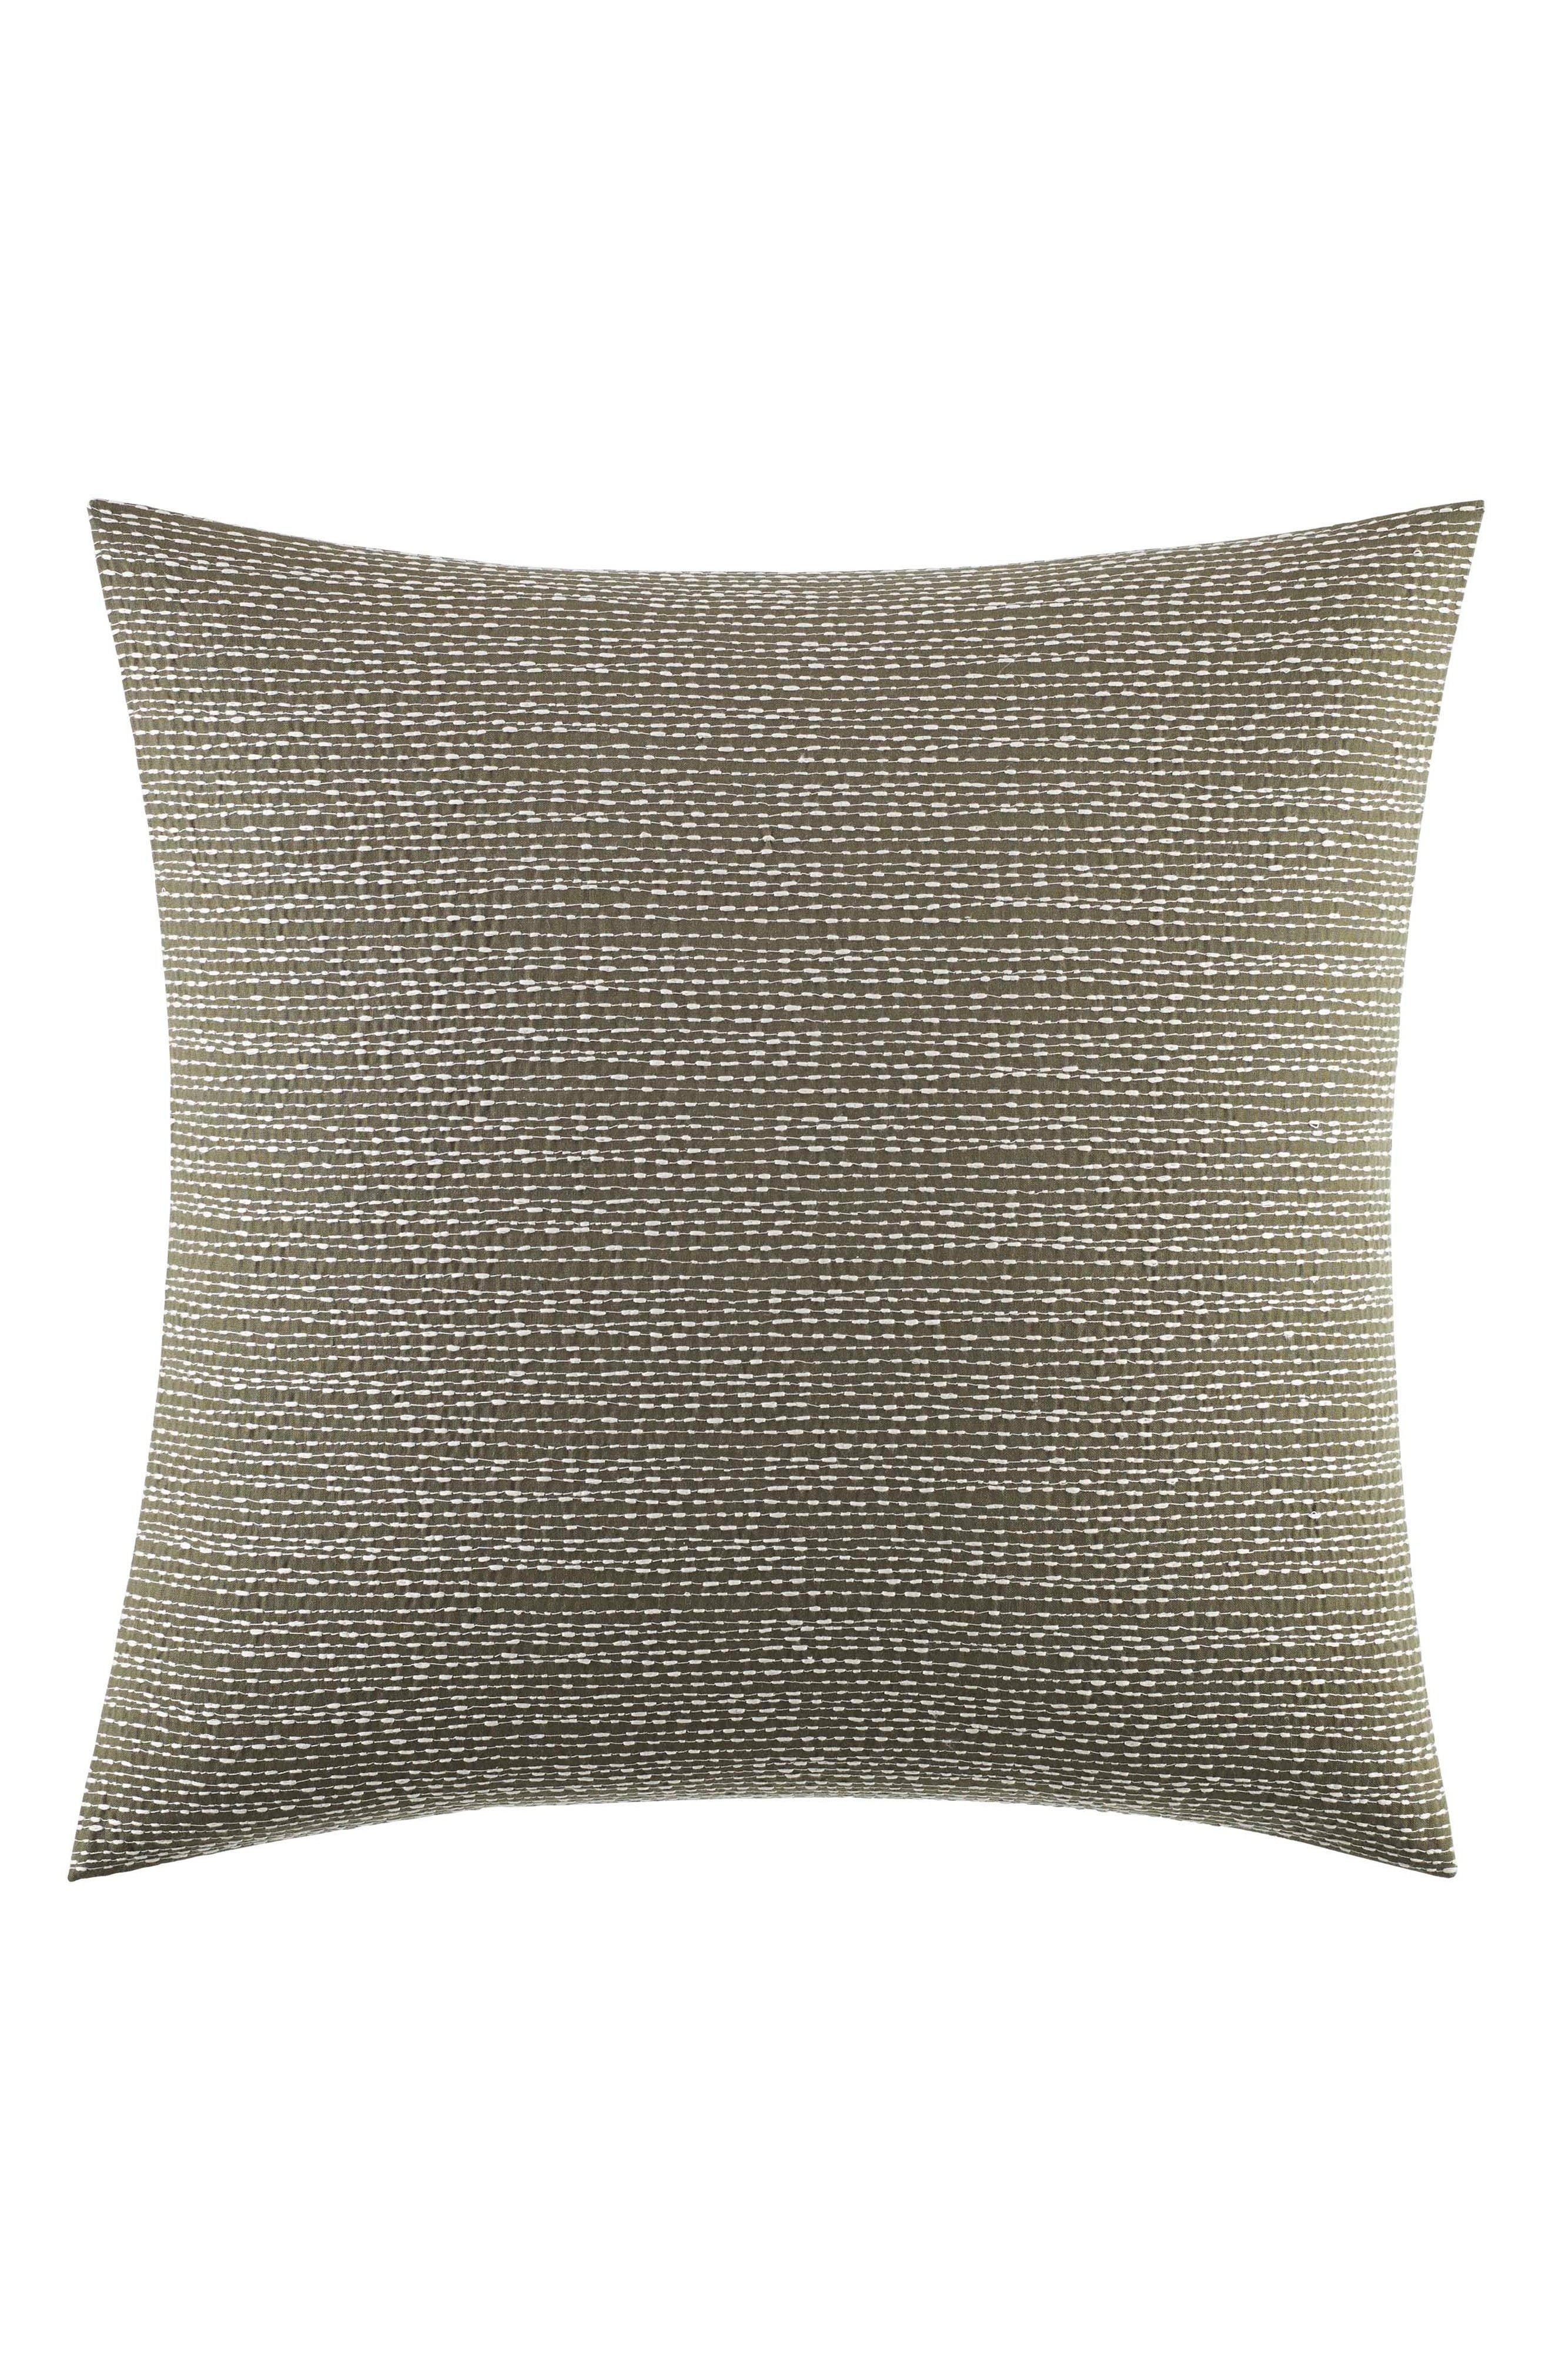 Alternate Image 1 Selected - Vera Wang Dragonfly Accent Pillow